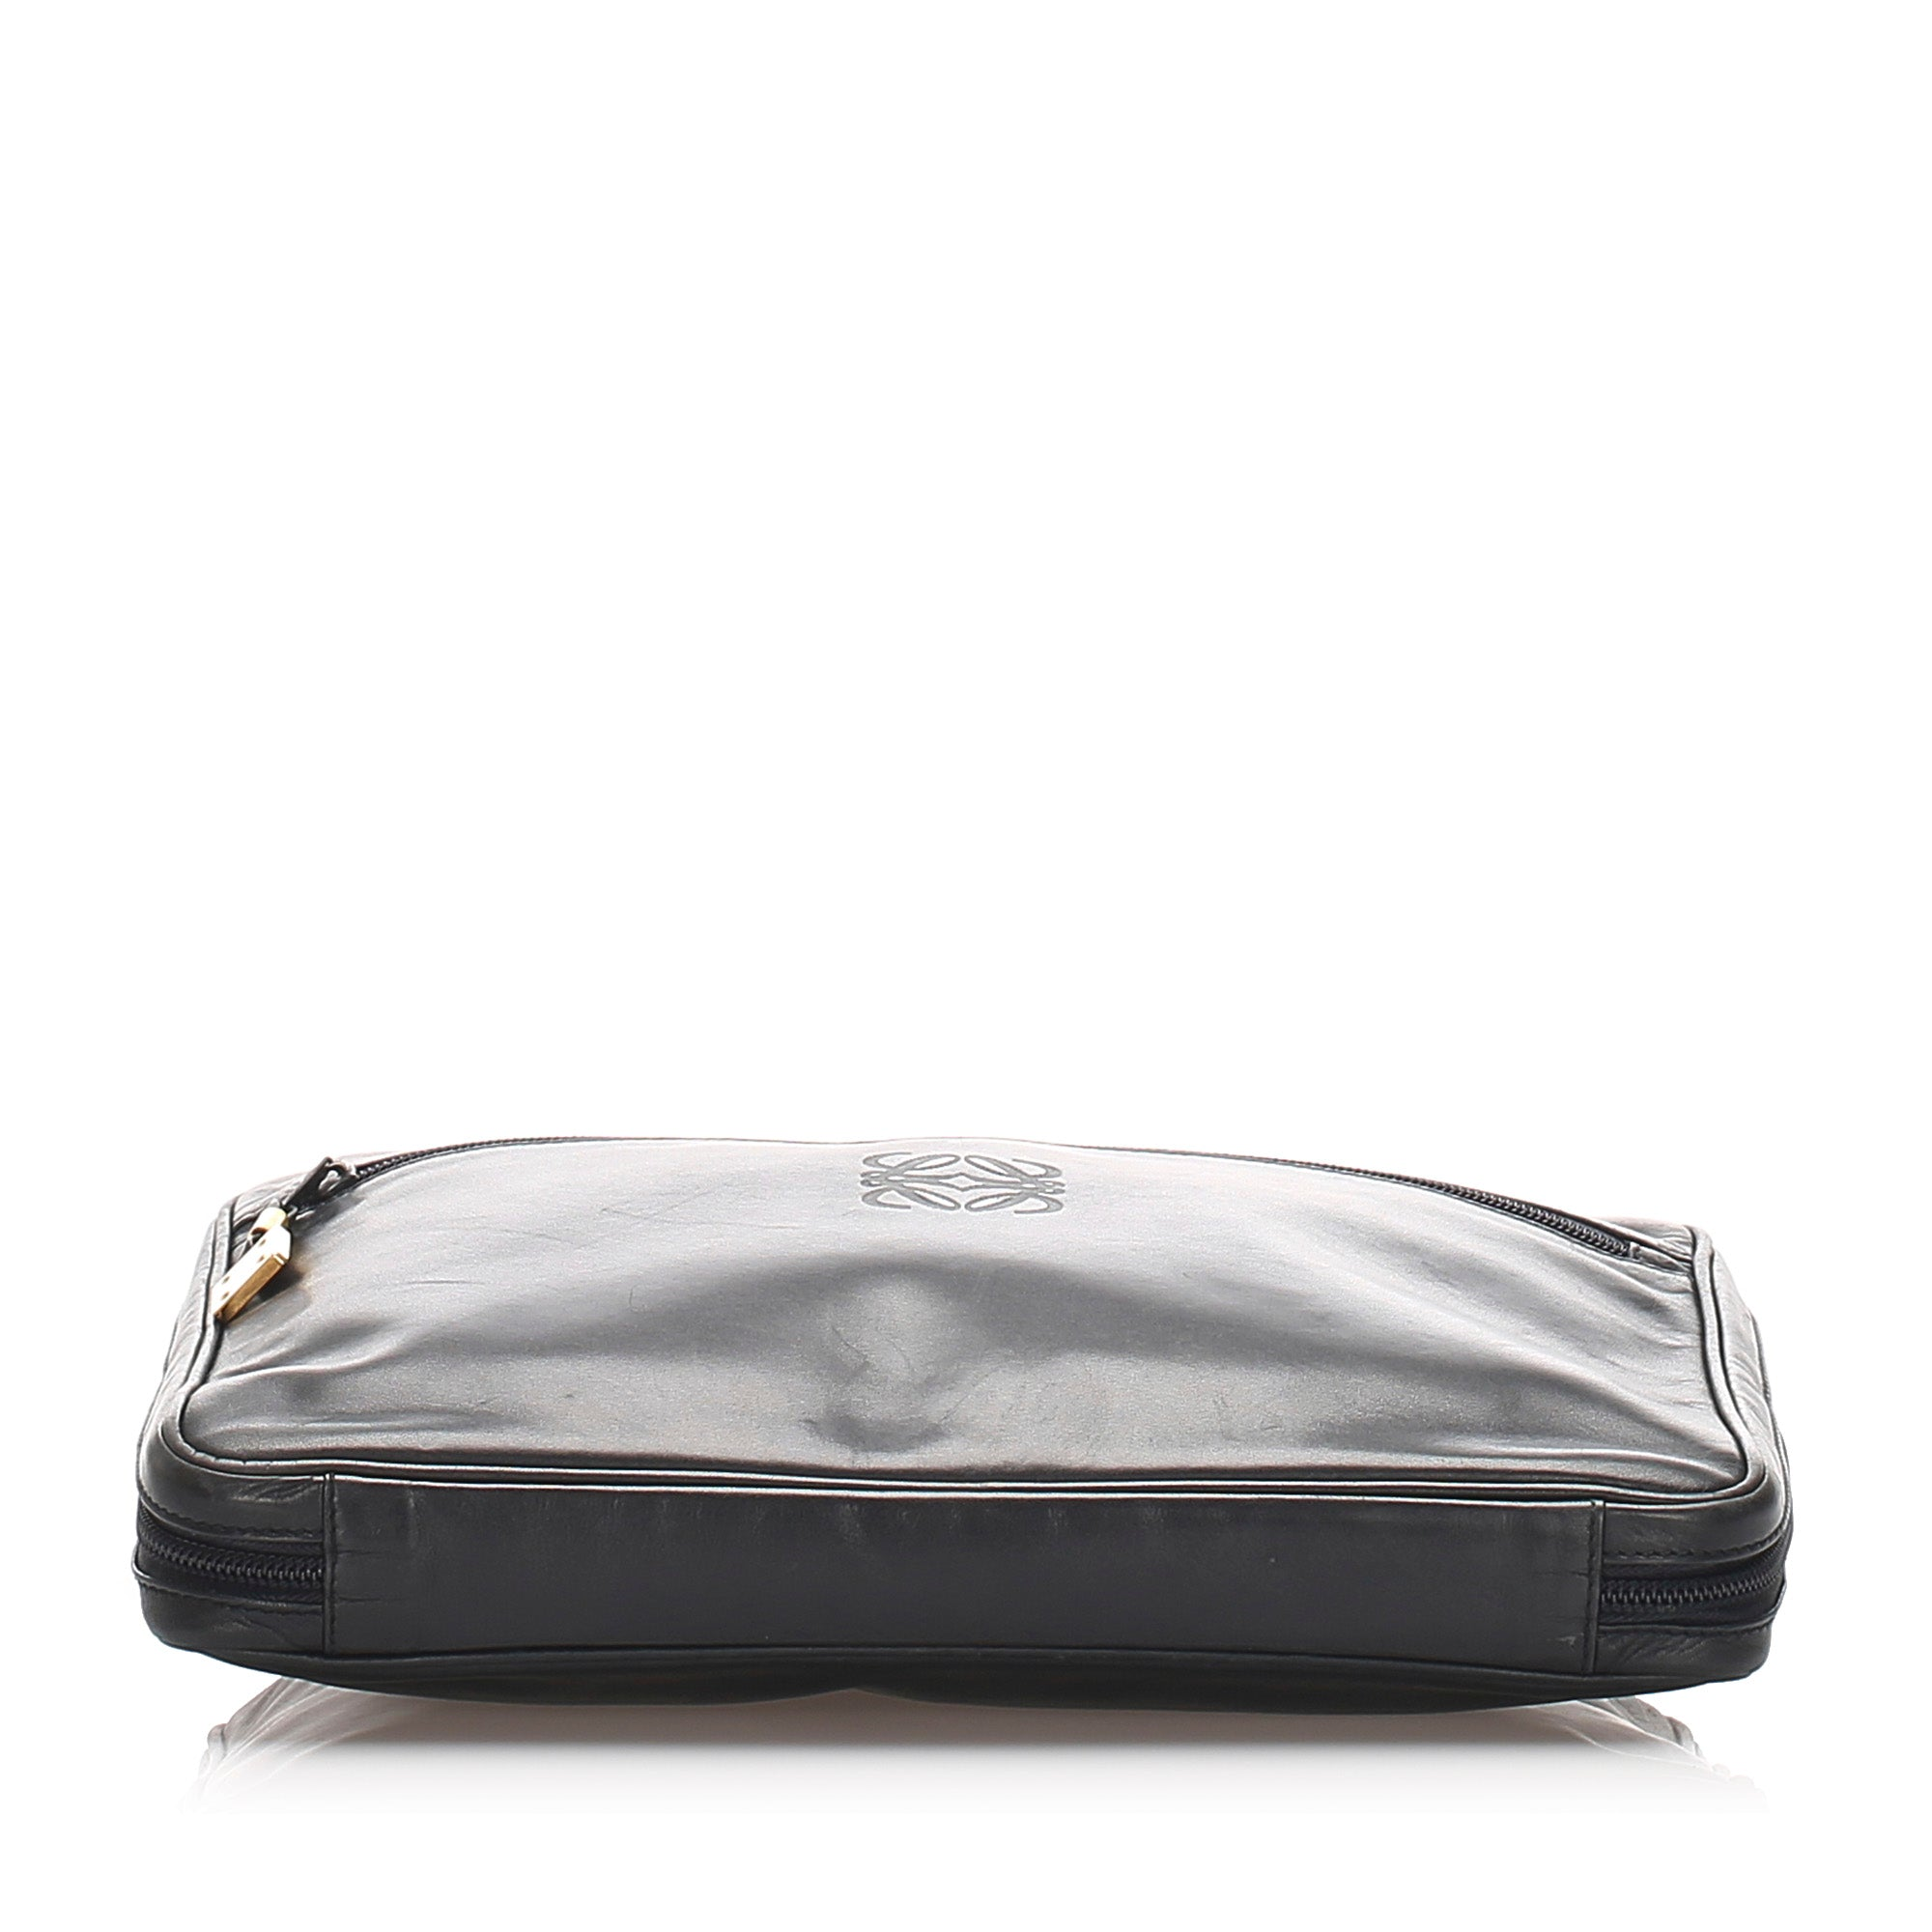 Loewe Black Leather Clutch Bag